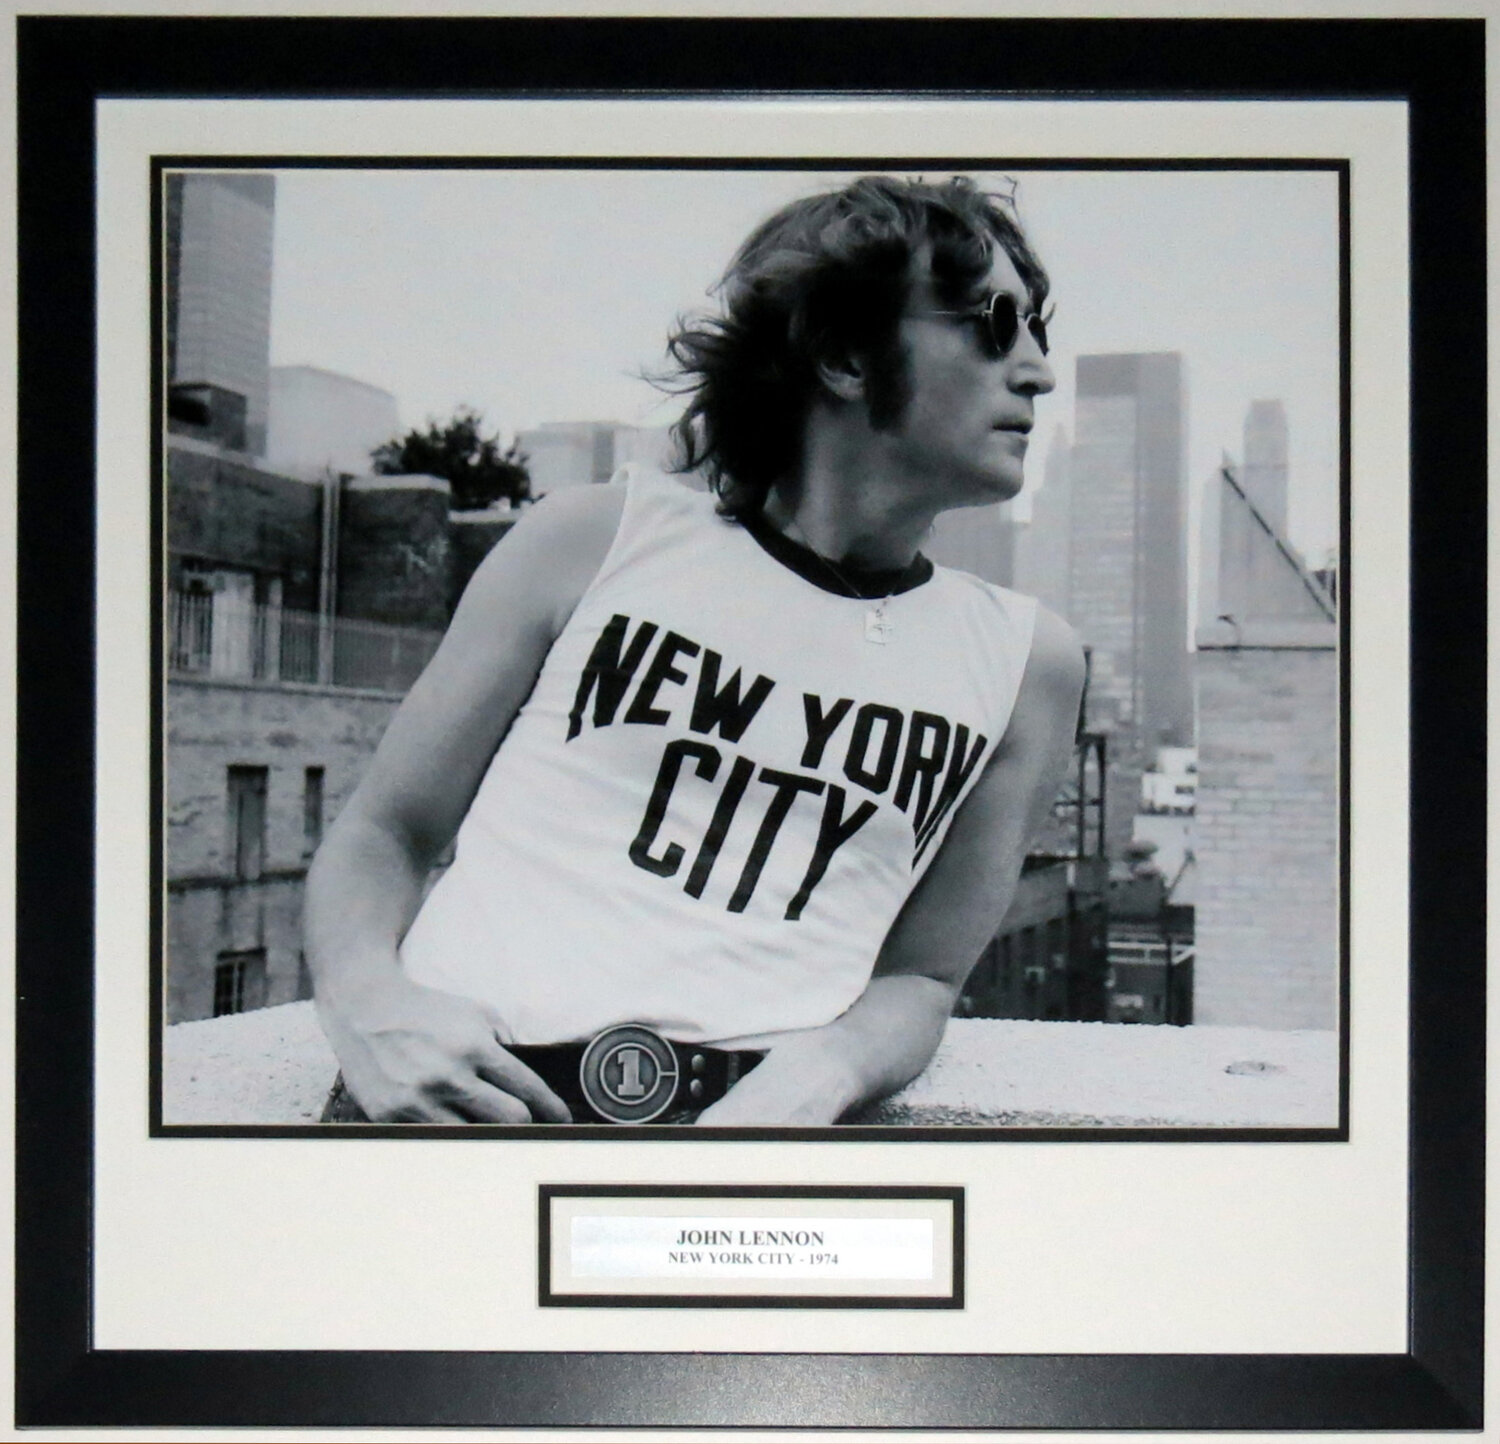 Bleachers Sports Music Framing John Lennon New York City The Beatles 16x20 Photo Professionally Framed